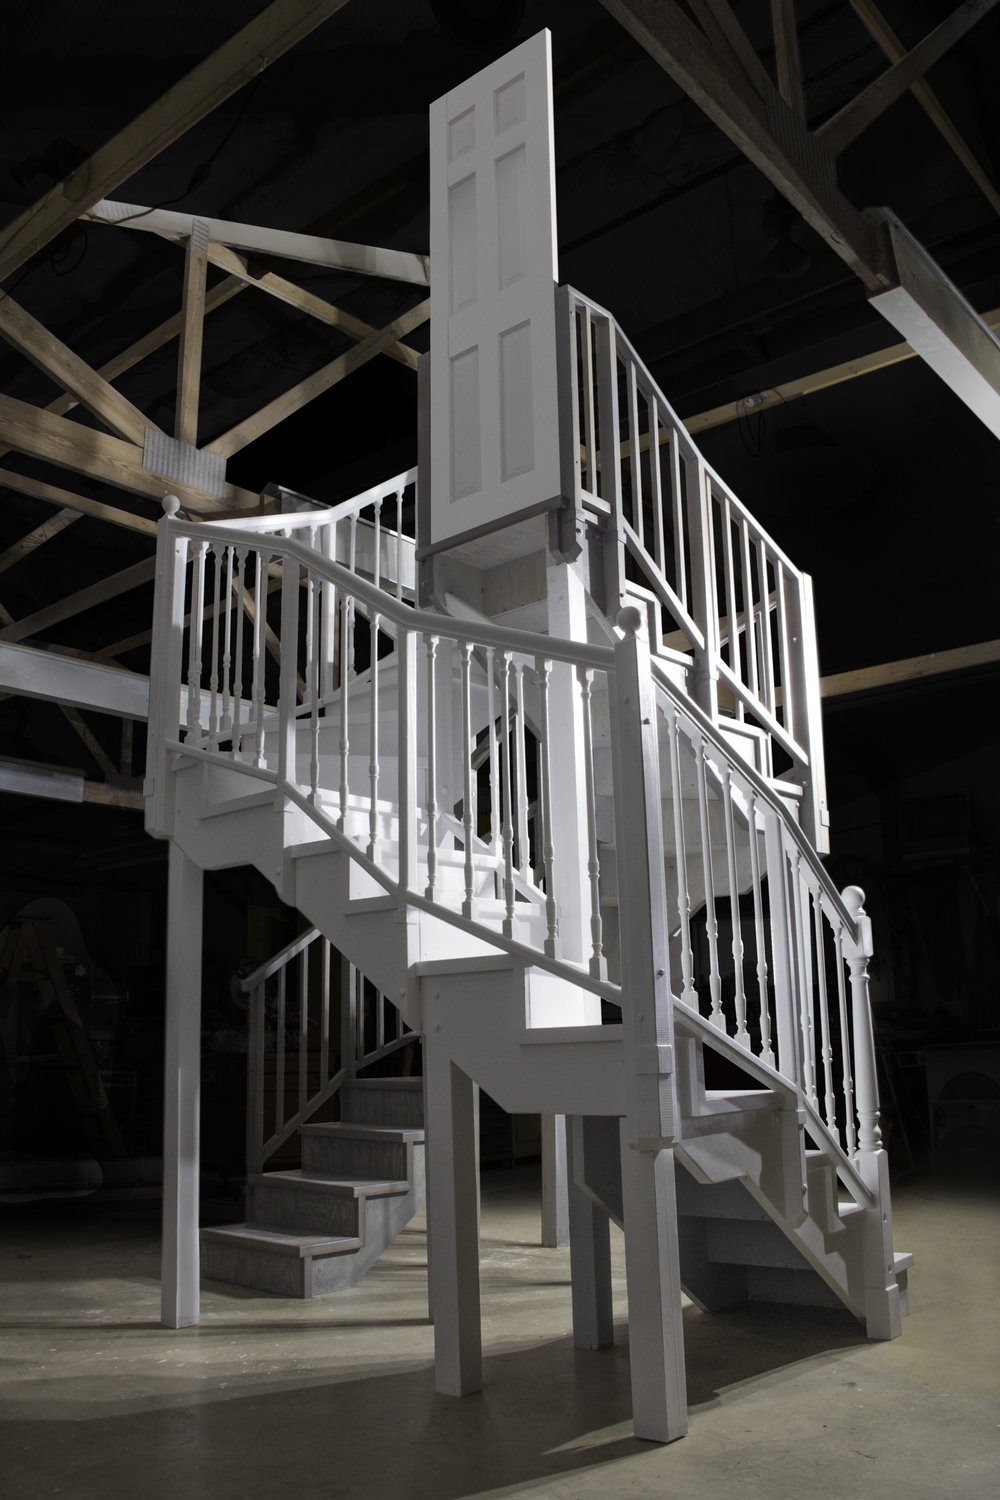 In Progess, Untitled Stairs